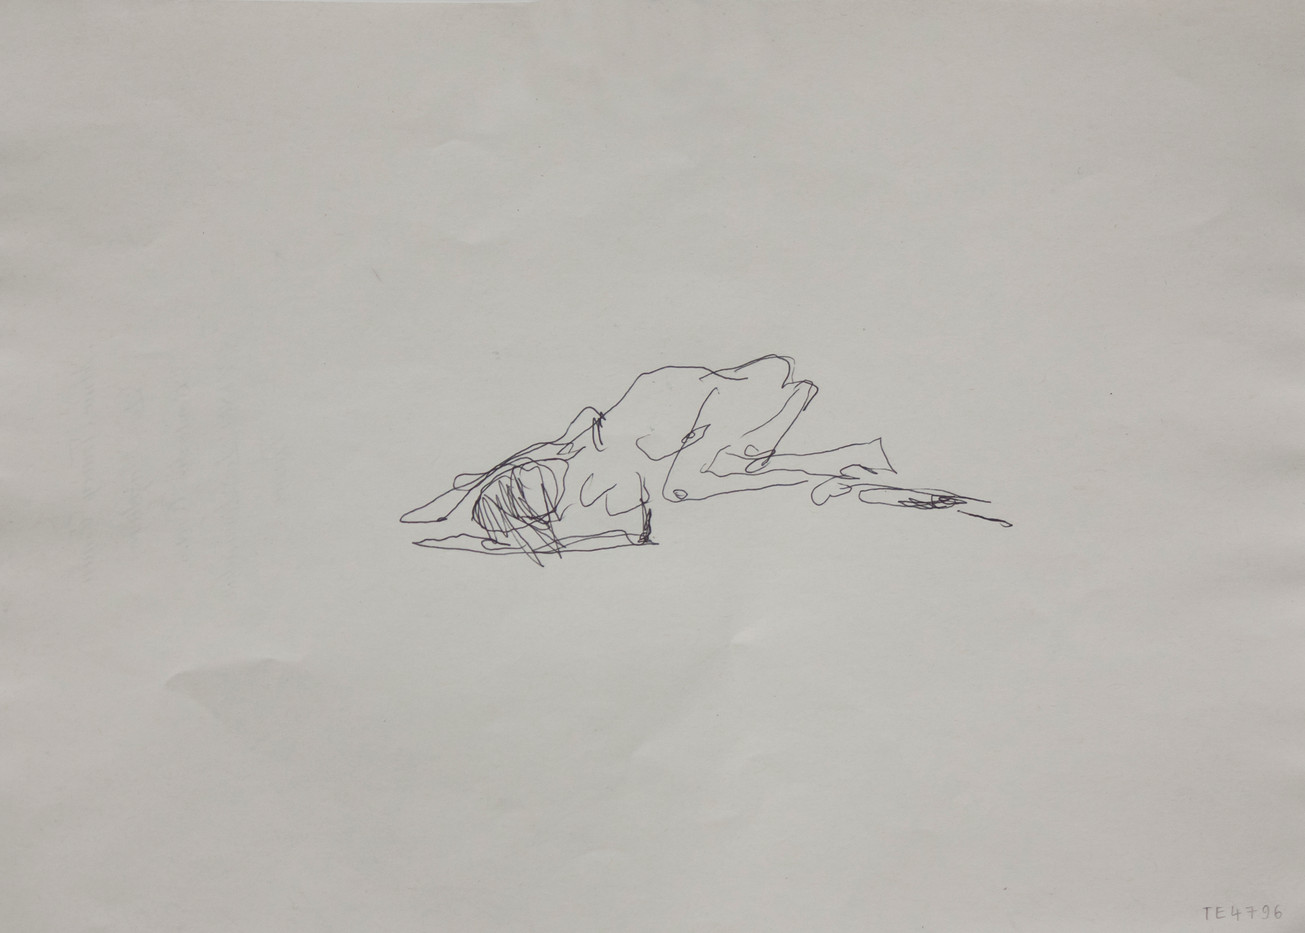 Tracey Emin | More Thinking (Verso) | 2012 | Pen on Paper | 21 x 29.5 cm